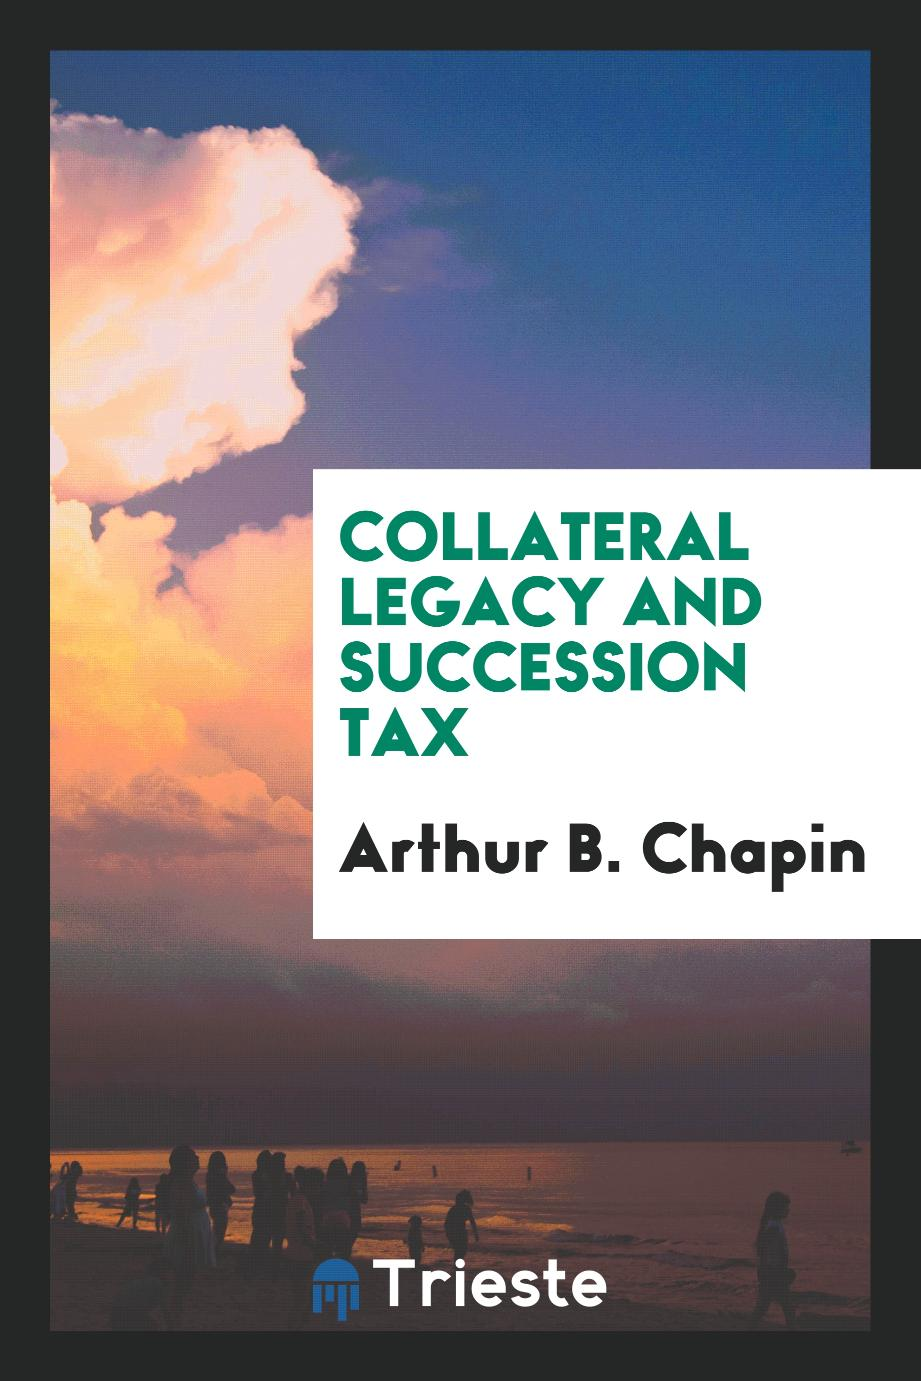 Collateral Legacy and Succession Tax